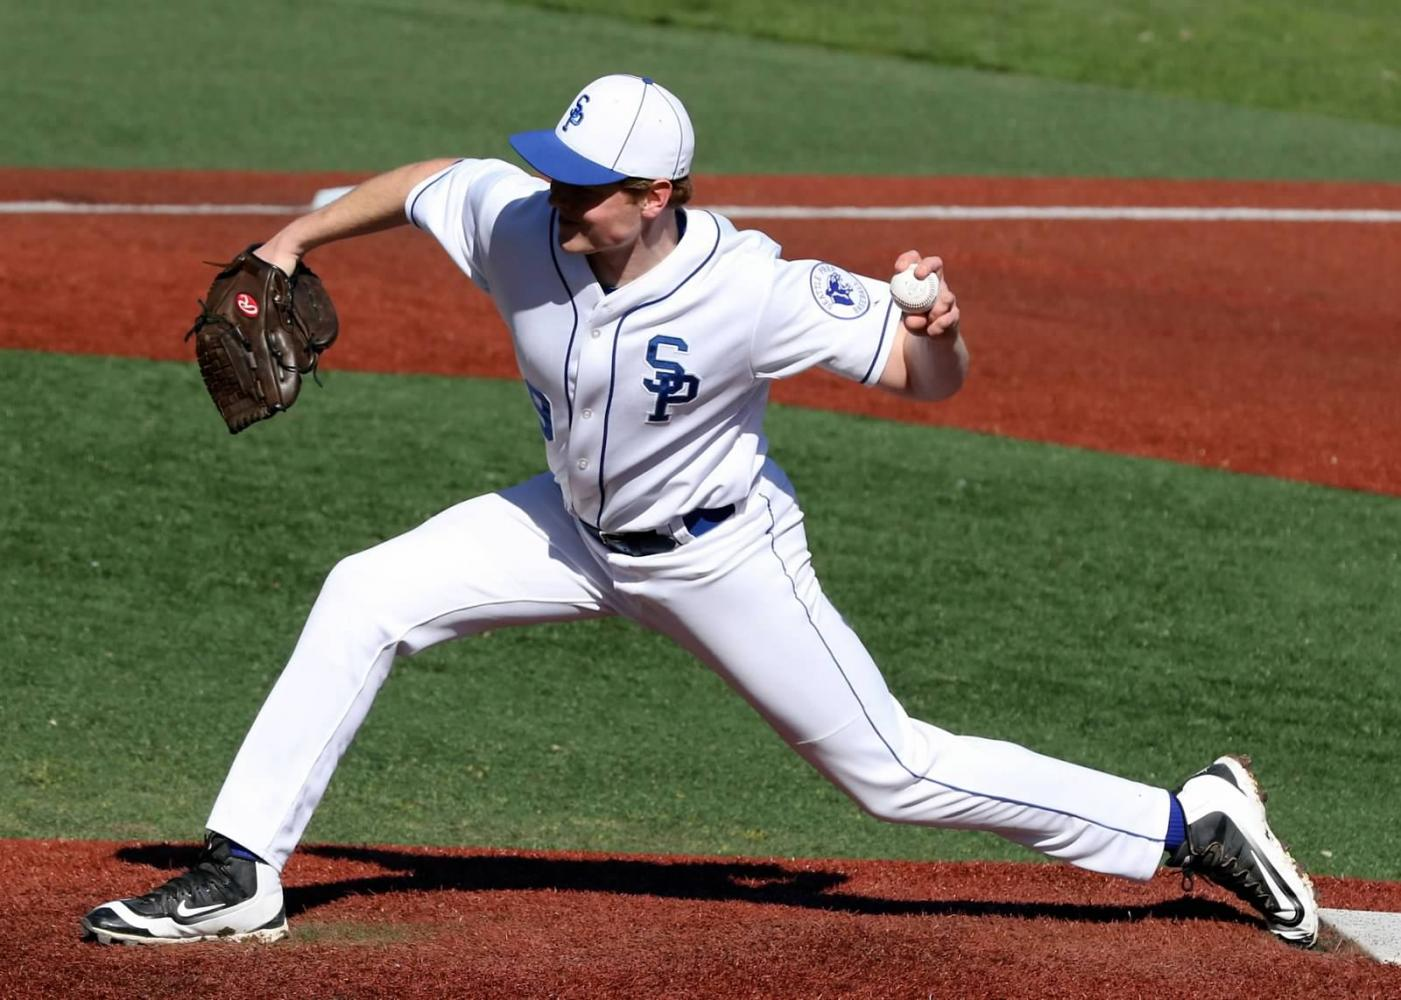 Baseball superstar, Will Rahlman'17 , has been on fire this season as he leads the Panthers from the mound. Rahlman '17 will play at Chapman University next year.